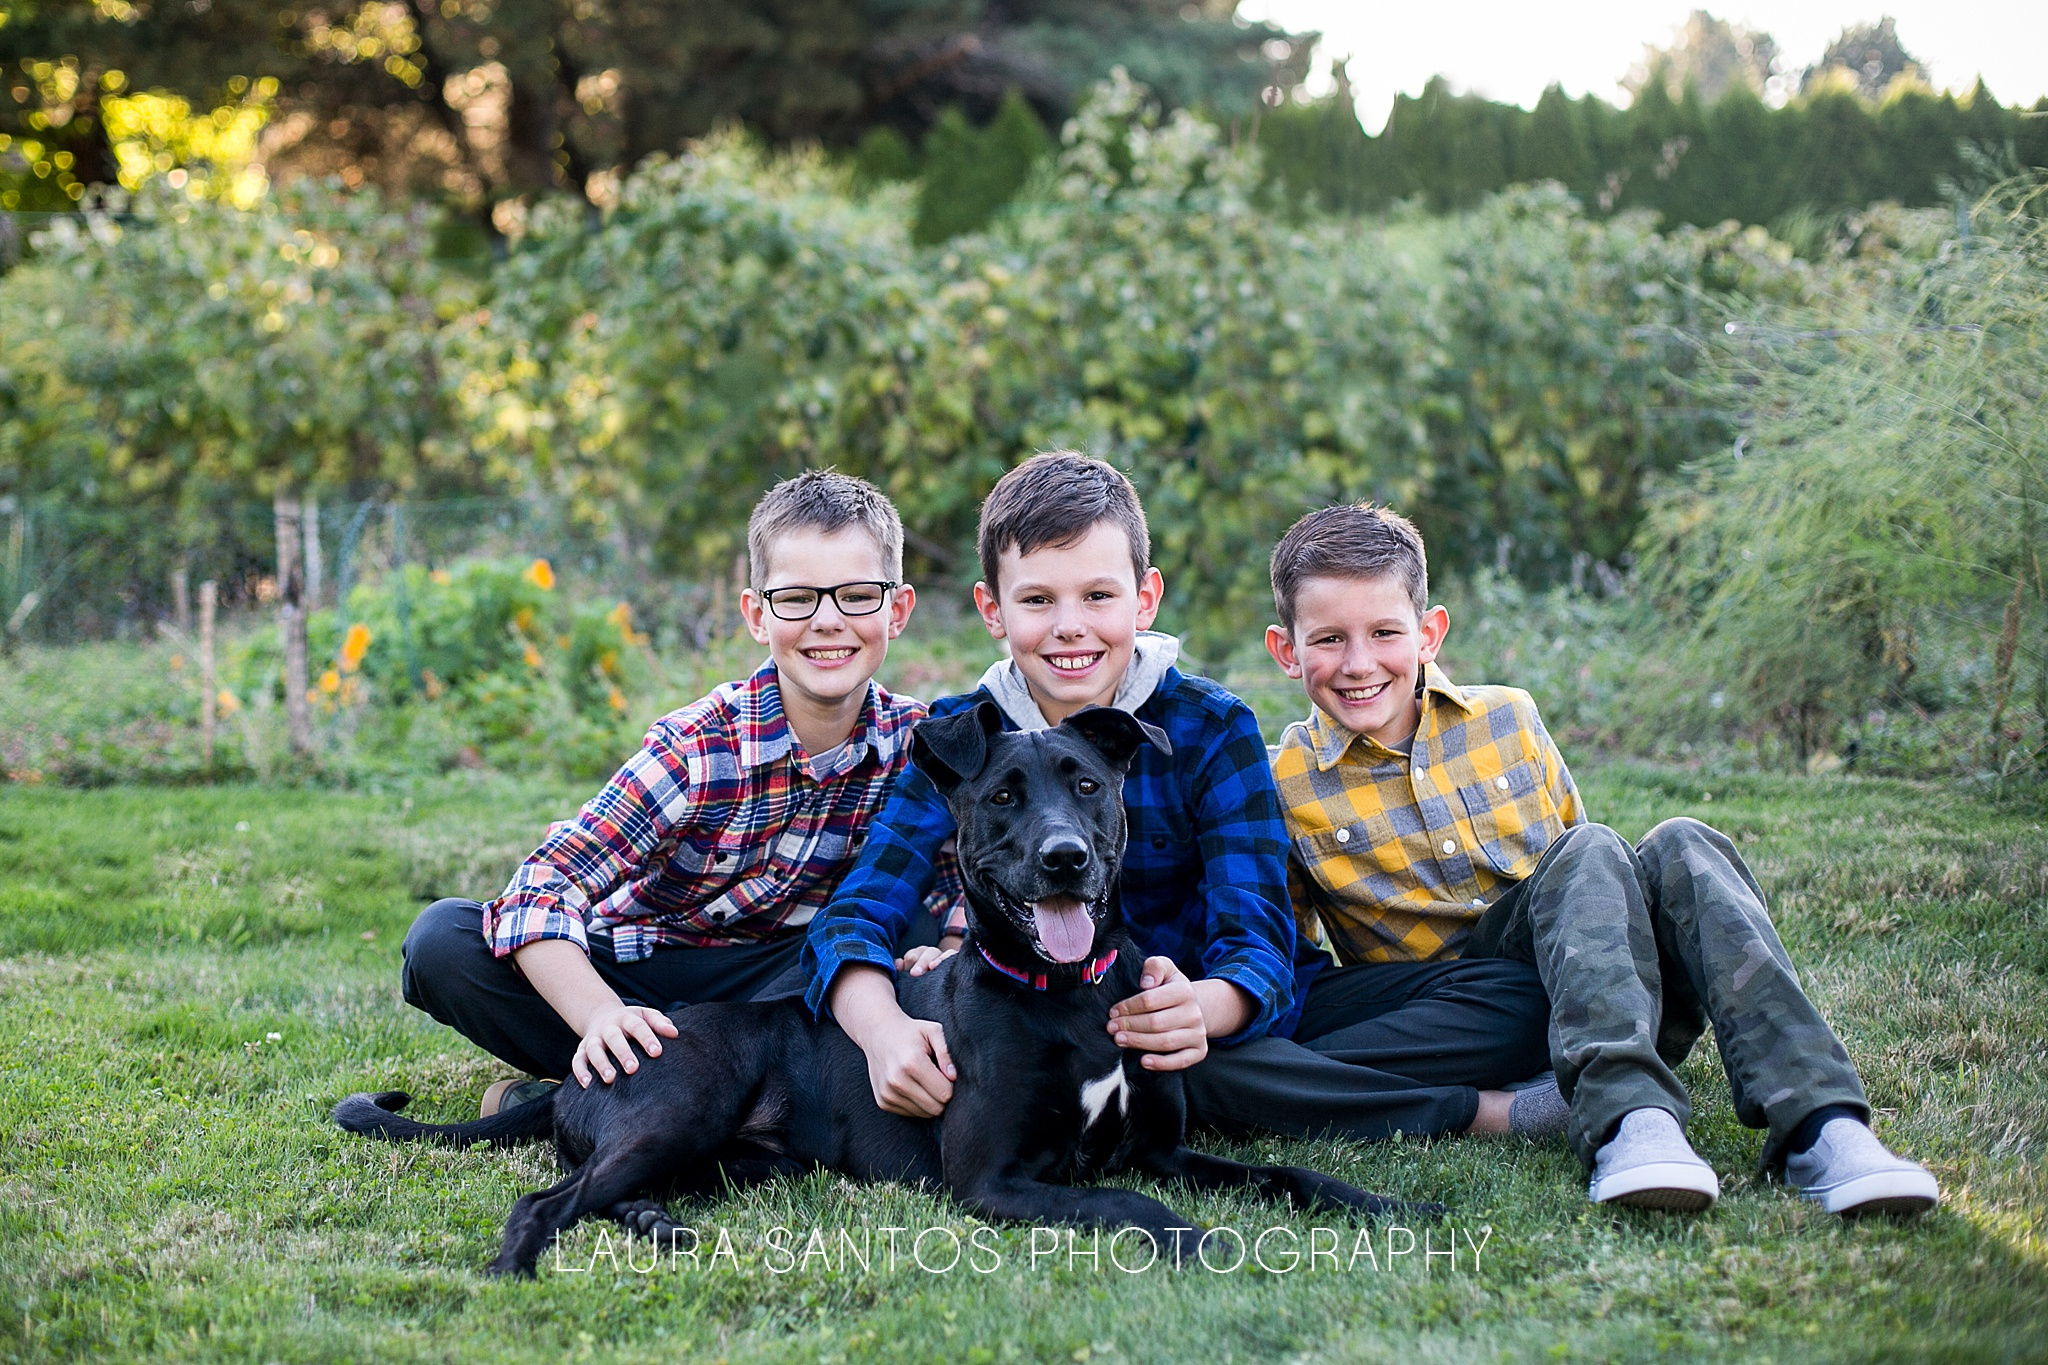 Laura Santos Photography Portland Oregon Family Photographer_0715.jpg